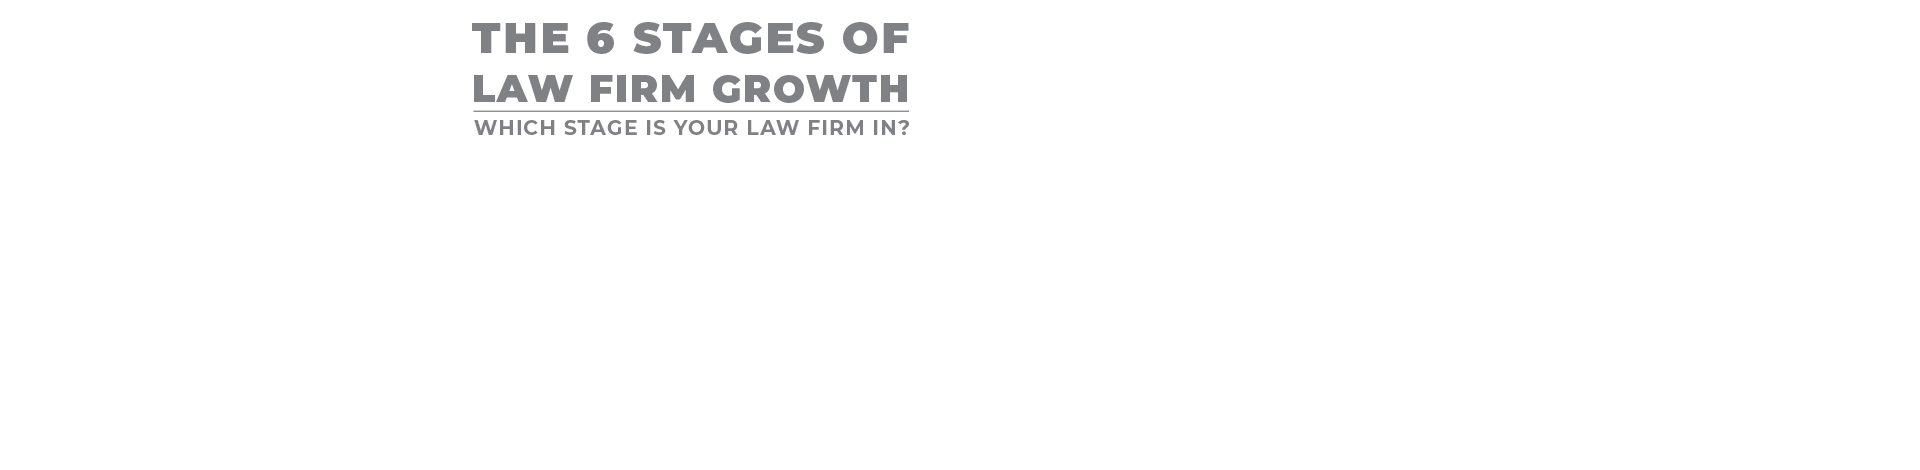 the six stages of law firm growth